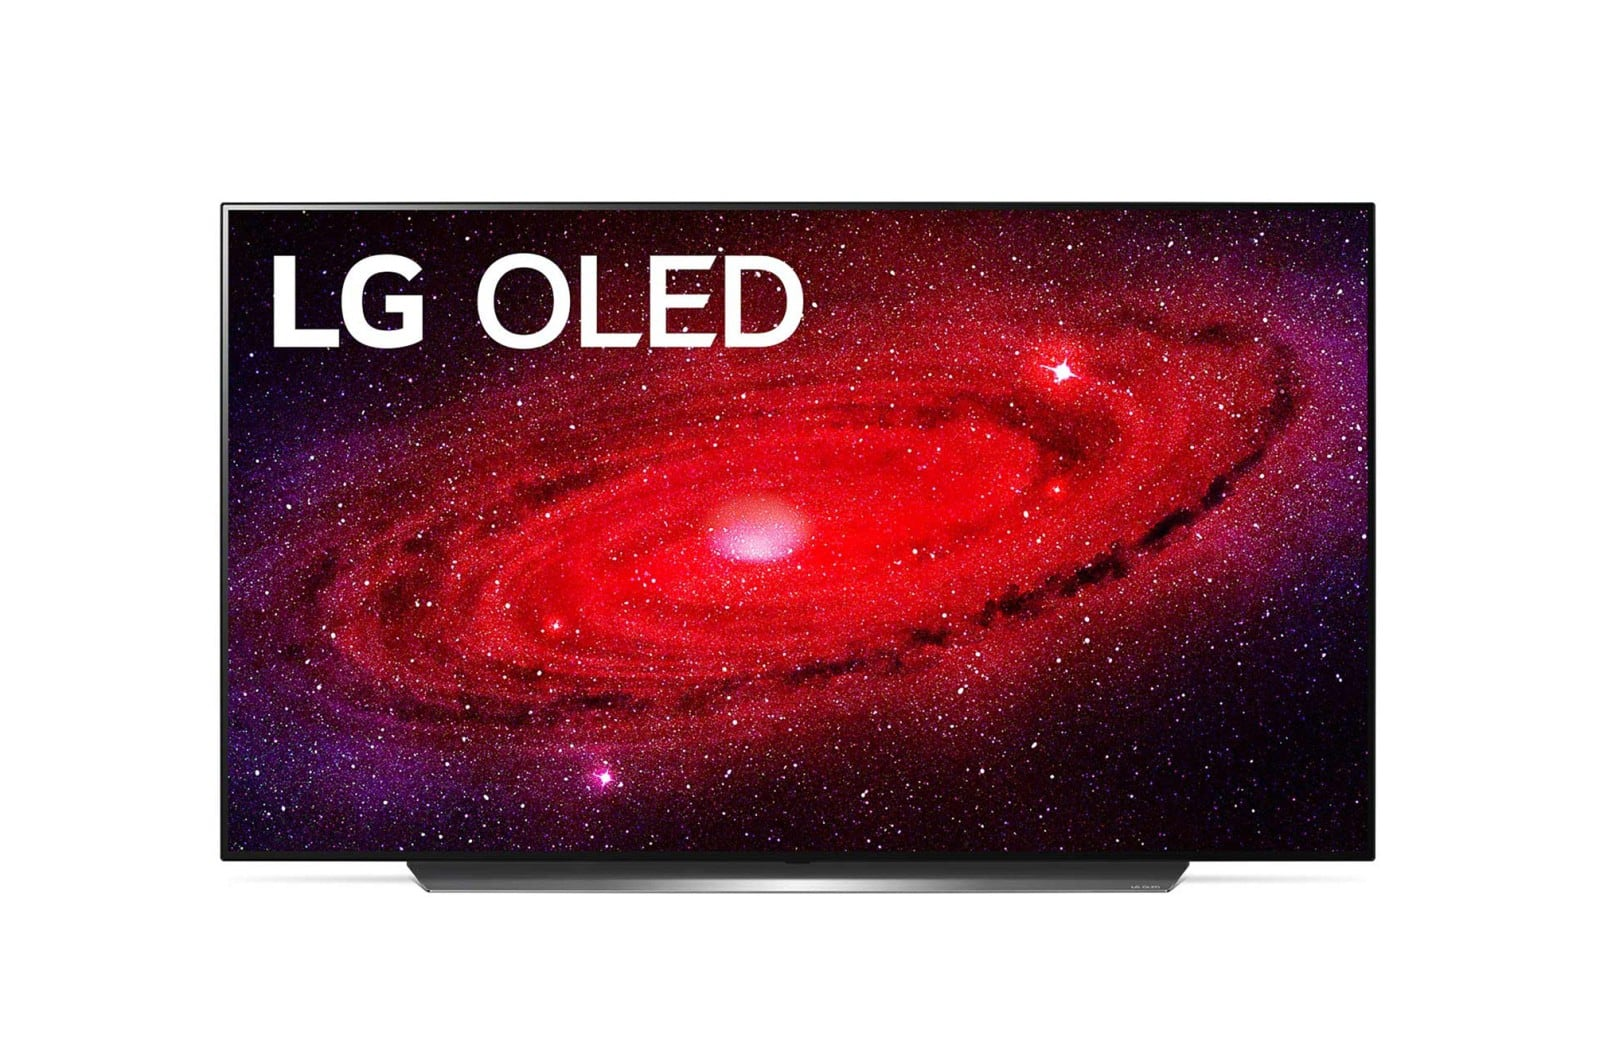 ***MILITARY ONLY*** LG 65 in. CX OLED 4K HDR Smart TV with AI ThinQ OLED65CXPUA $2099 (valid 9/11/20 to 9/17/20)